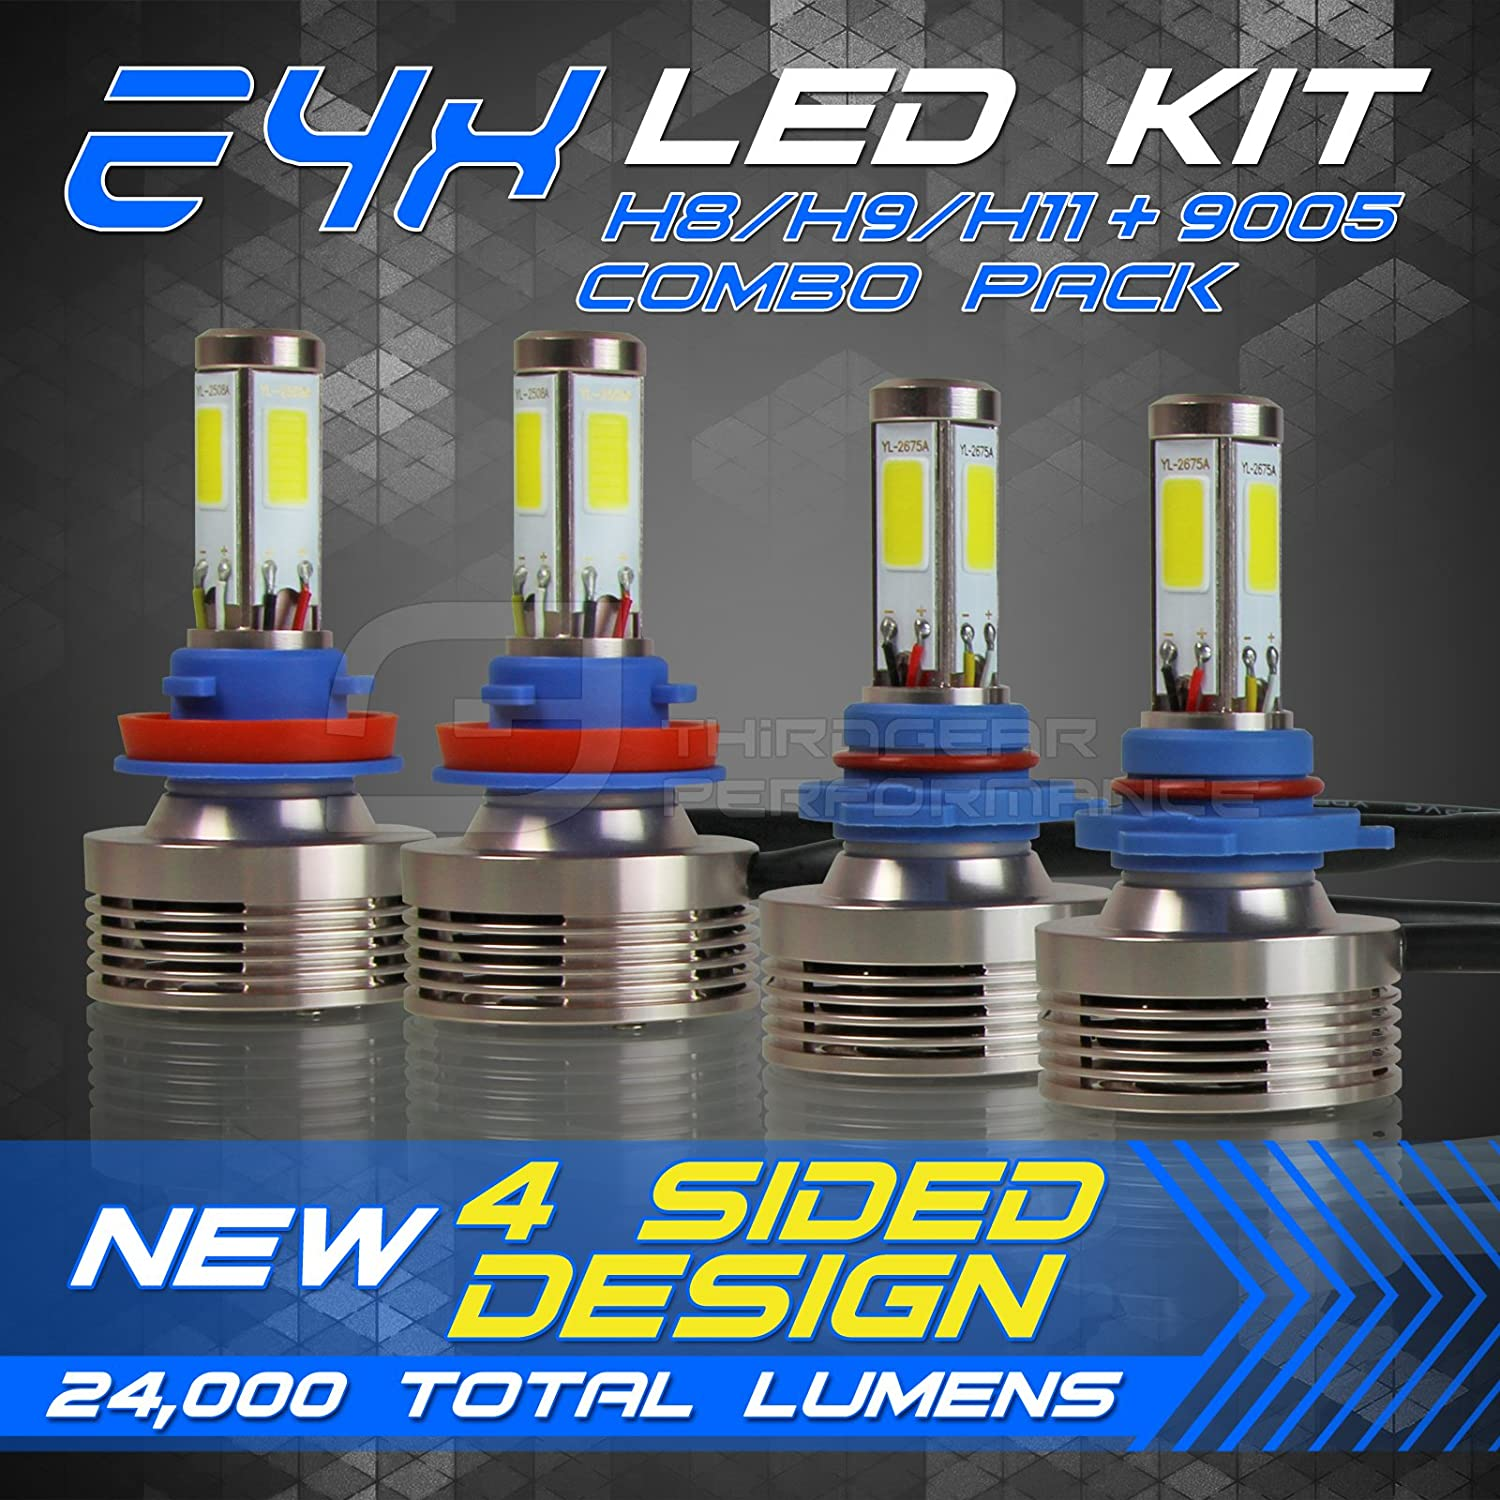 9005//HB3 9005//HB3 Lumileds Luxeon-C//MZ LED Automobile Headlight Bulbs with Advanced LED Chip and All-in-One Conversion kit-80W//12,000LM//6,000K With 3 Years Warranty